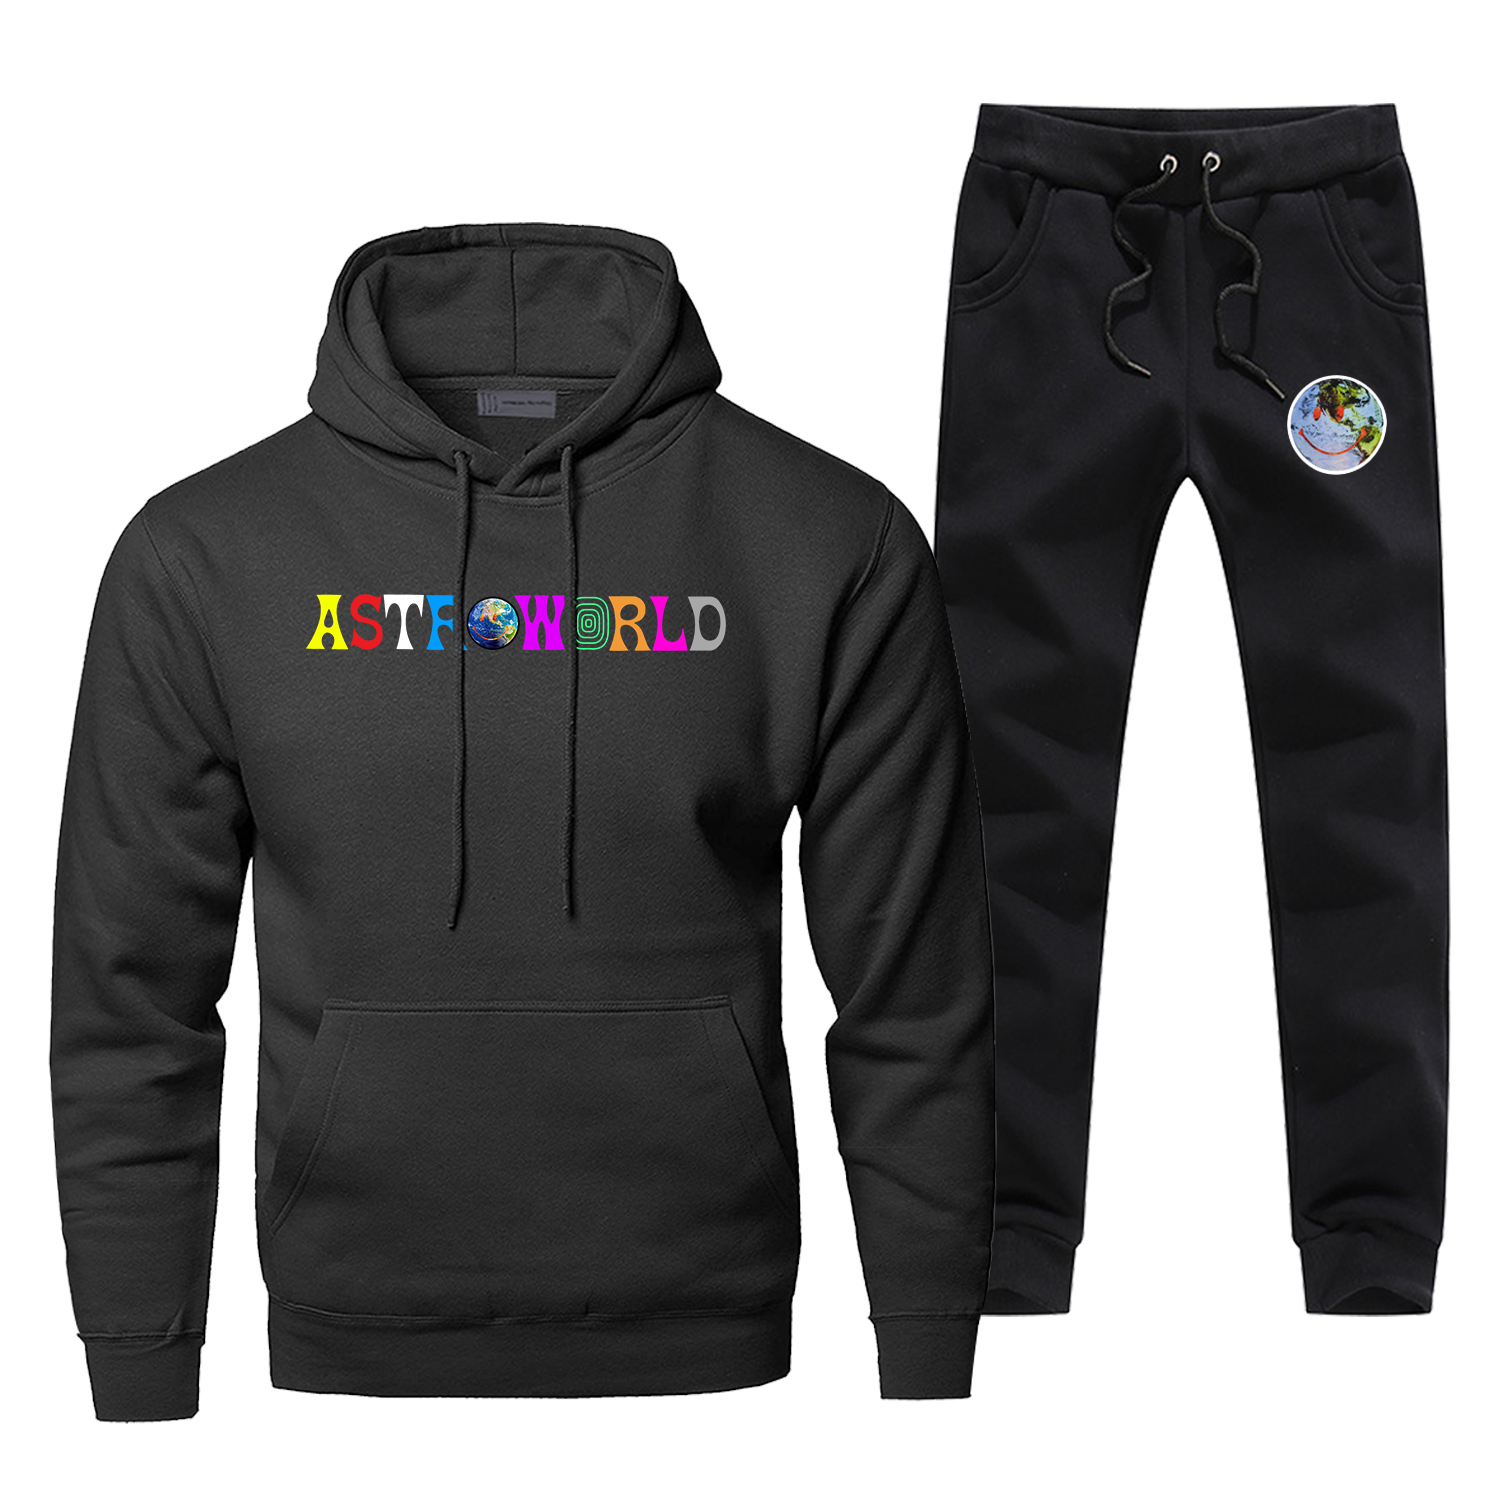 Astroworld Smile Defend The Earth Hoodies Pants Sets Men Suit Tracksuit 3 Piece Pant Sweatshirt Sweatpants Sportswear Sports Set